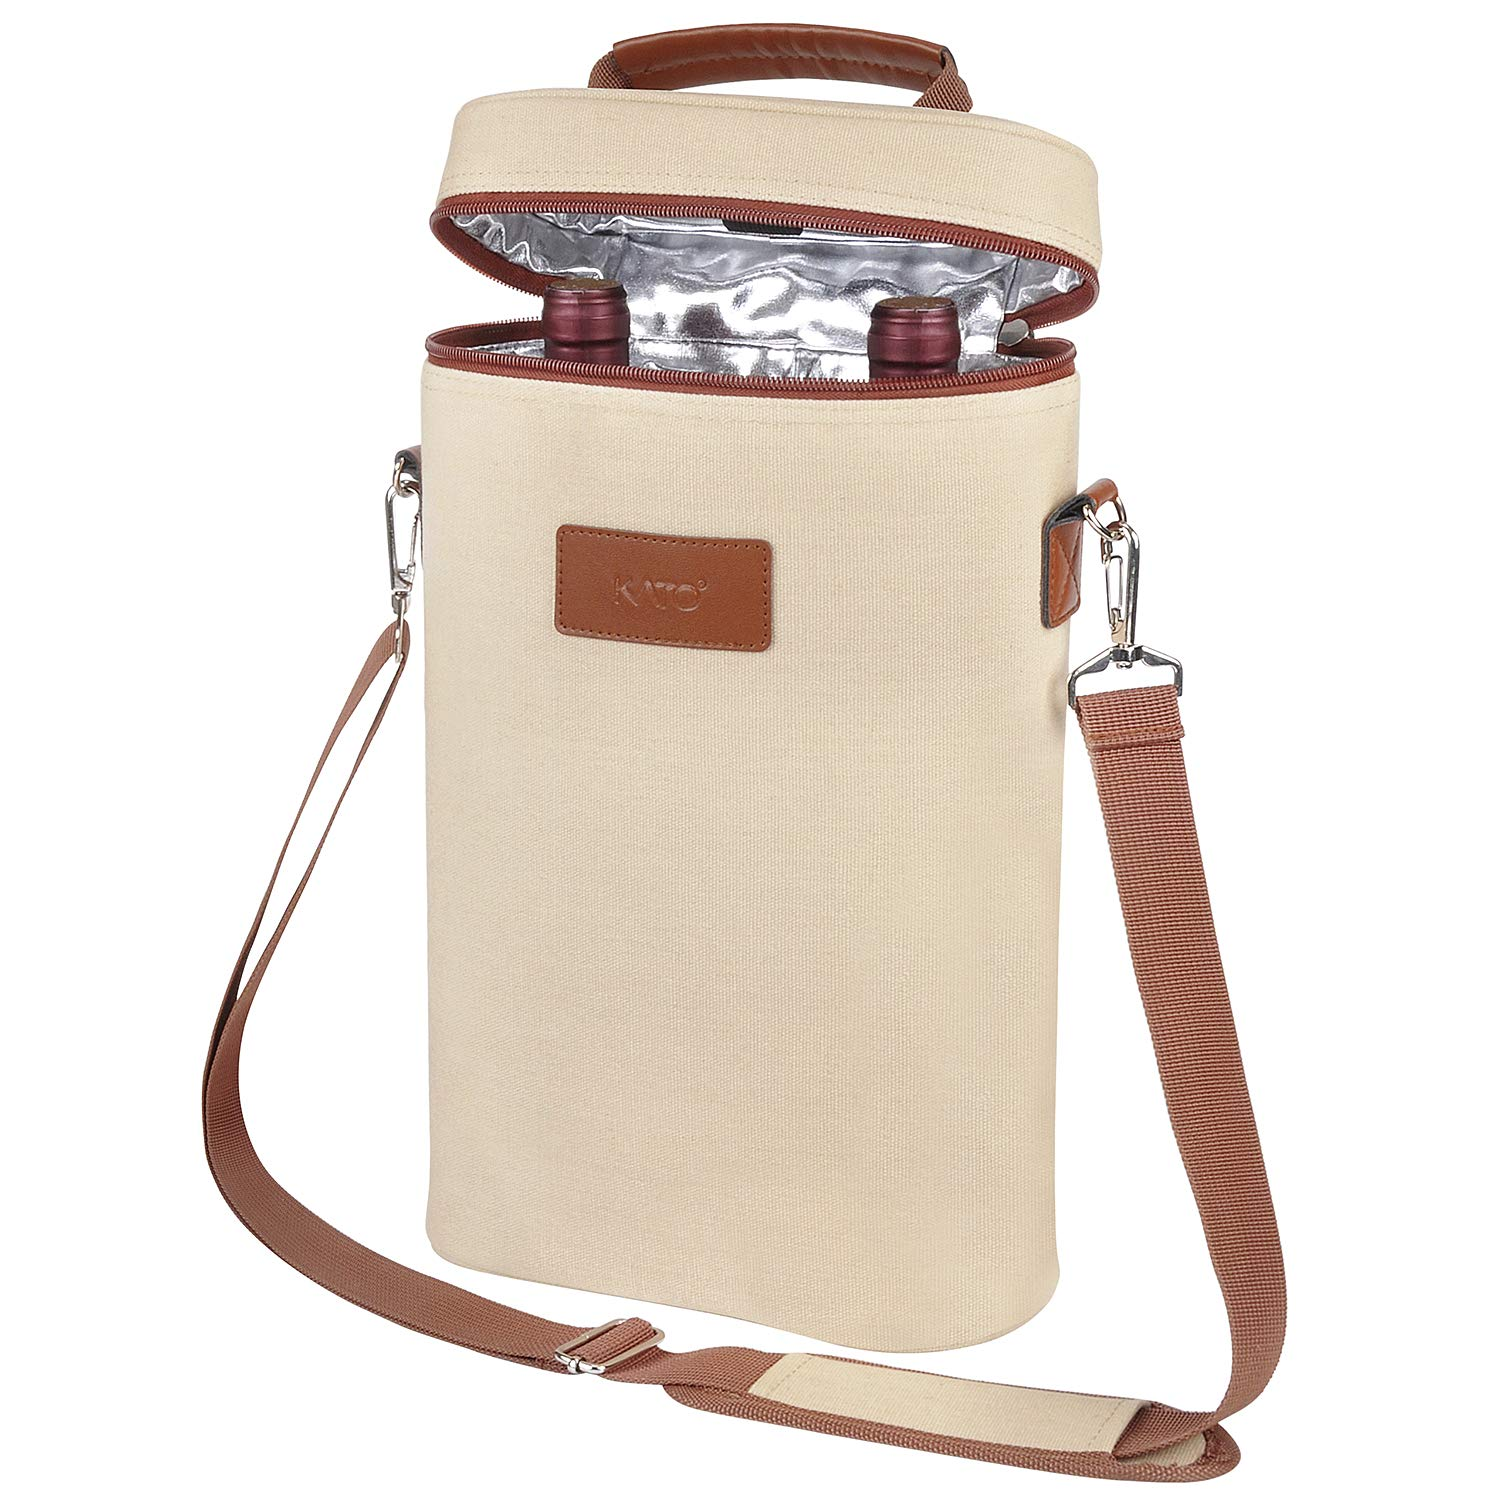 Tirrinia 2 Bottle Wine Tote Carrier - Insulated Portable Padded Versatile Canvas Cooler Bag for Travel, BYOB Restaurant, Wine Tasting, Party, Great Christmas Day Gift for Wine Lover, Beige